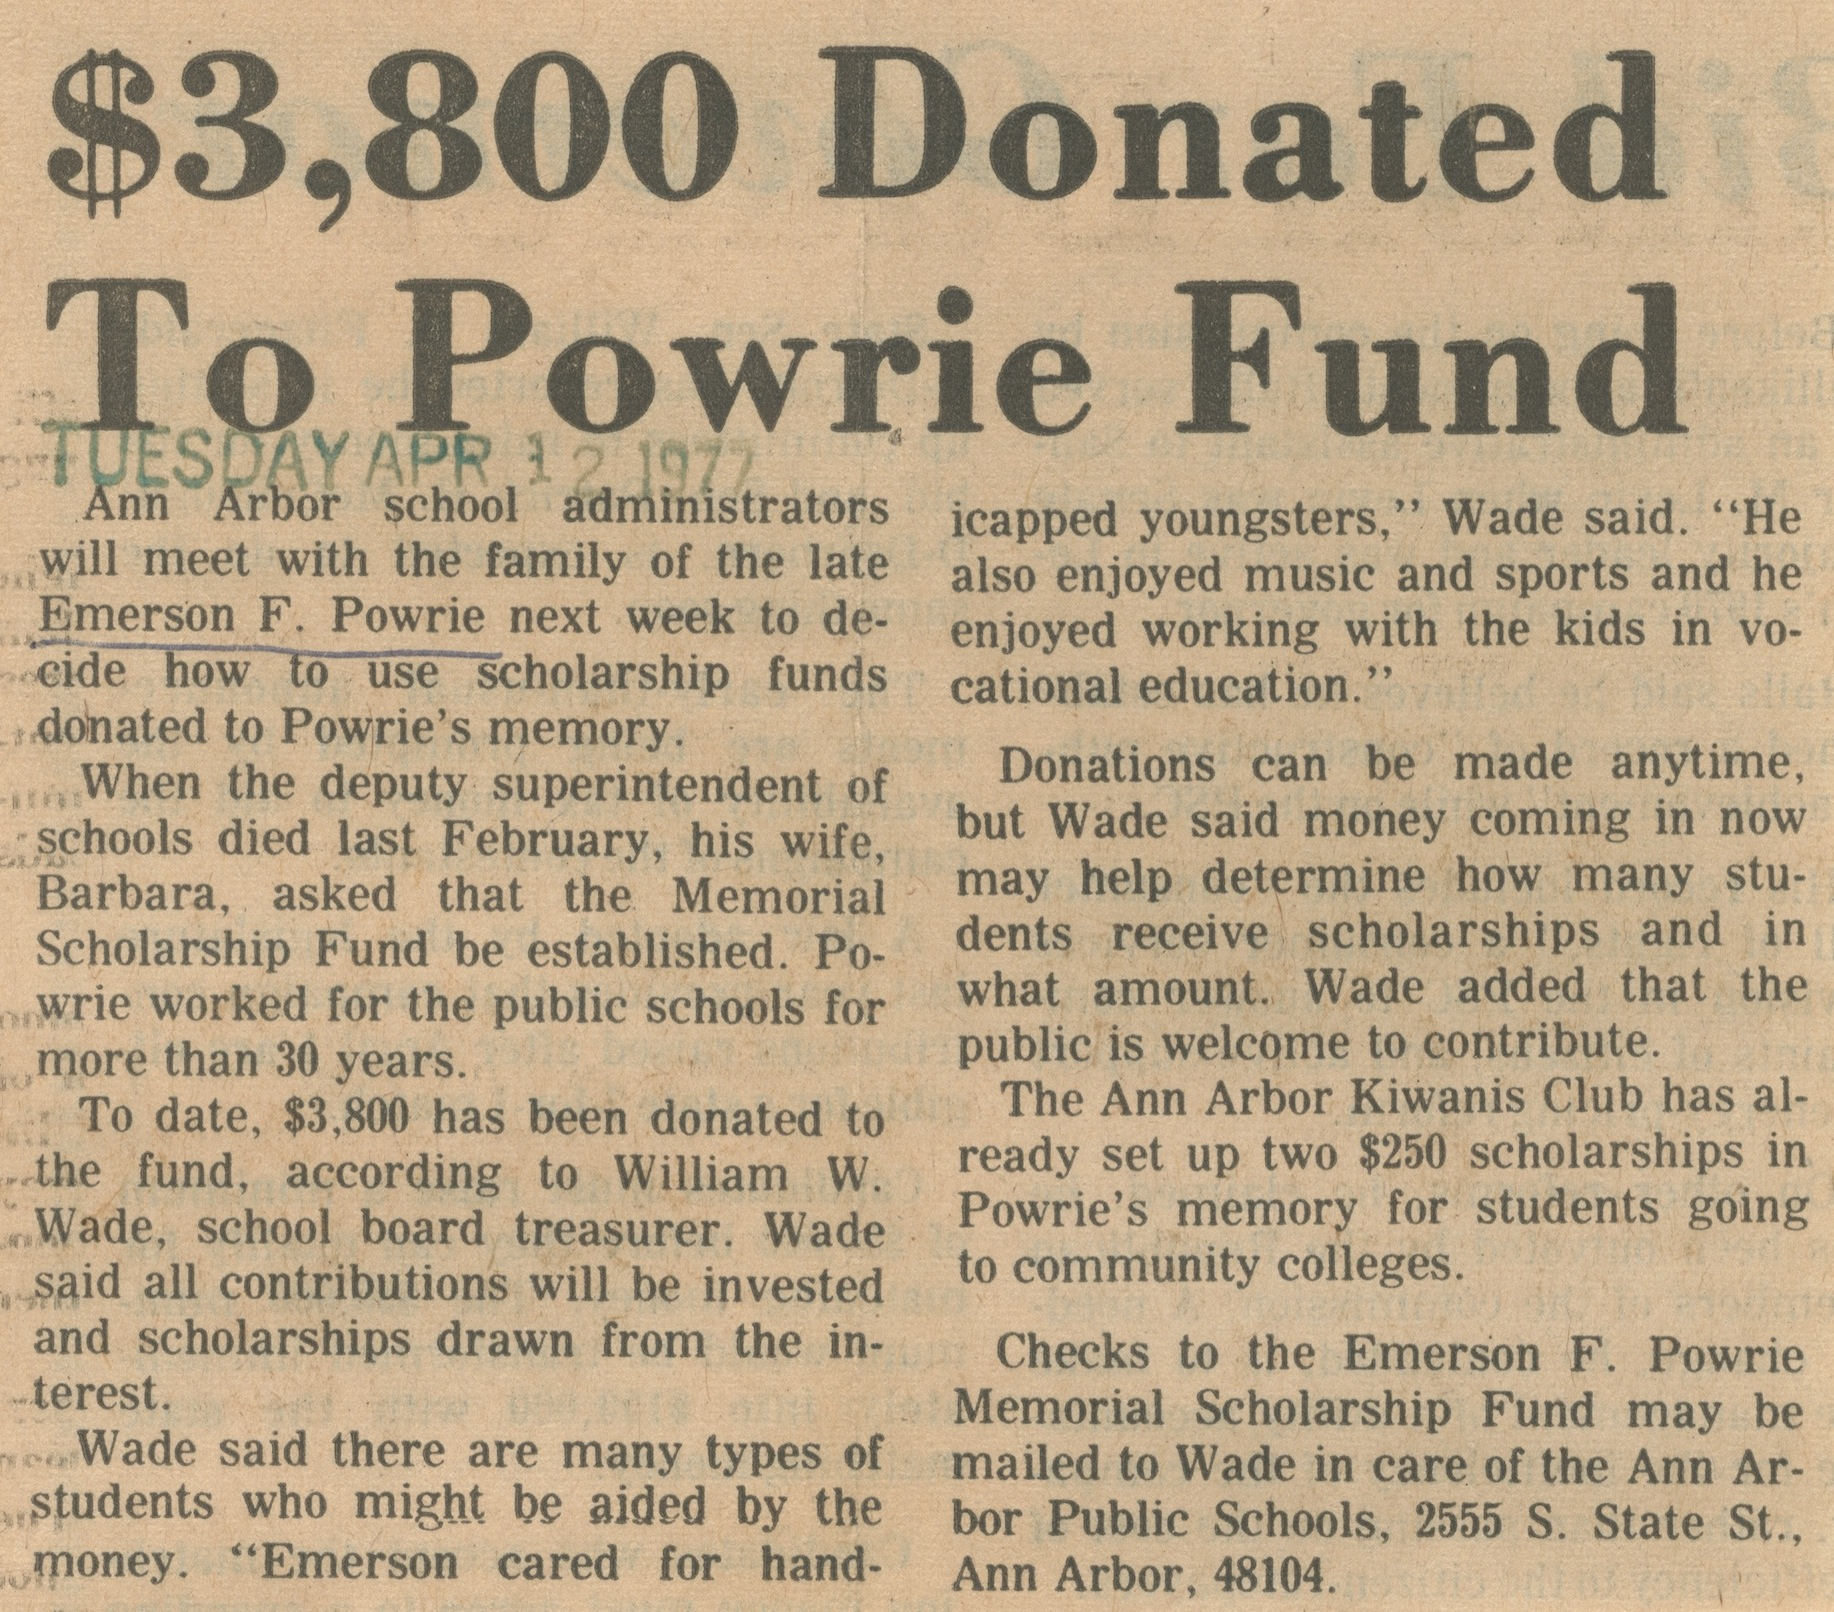 $3,800 Donated To Powrie Fund image